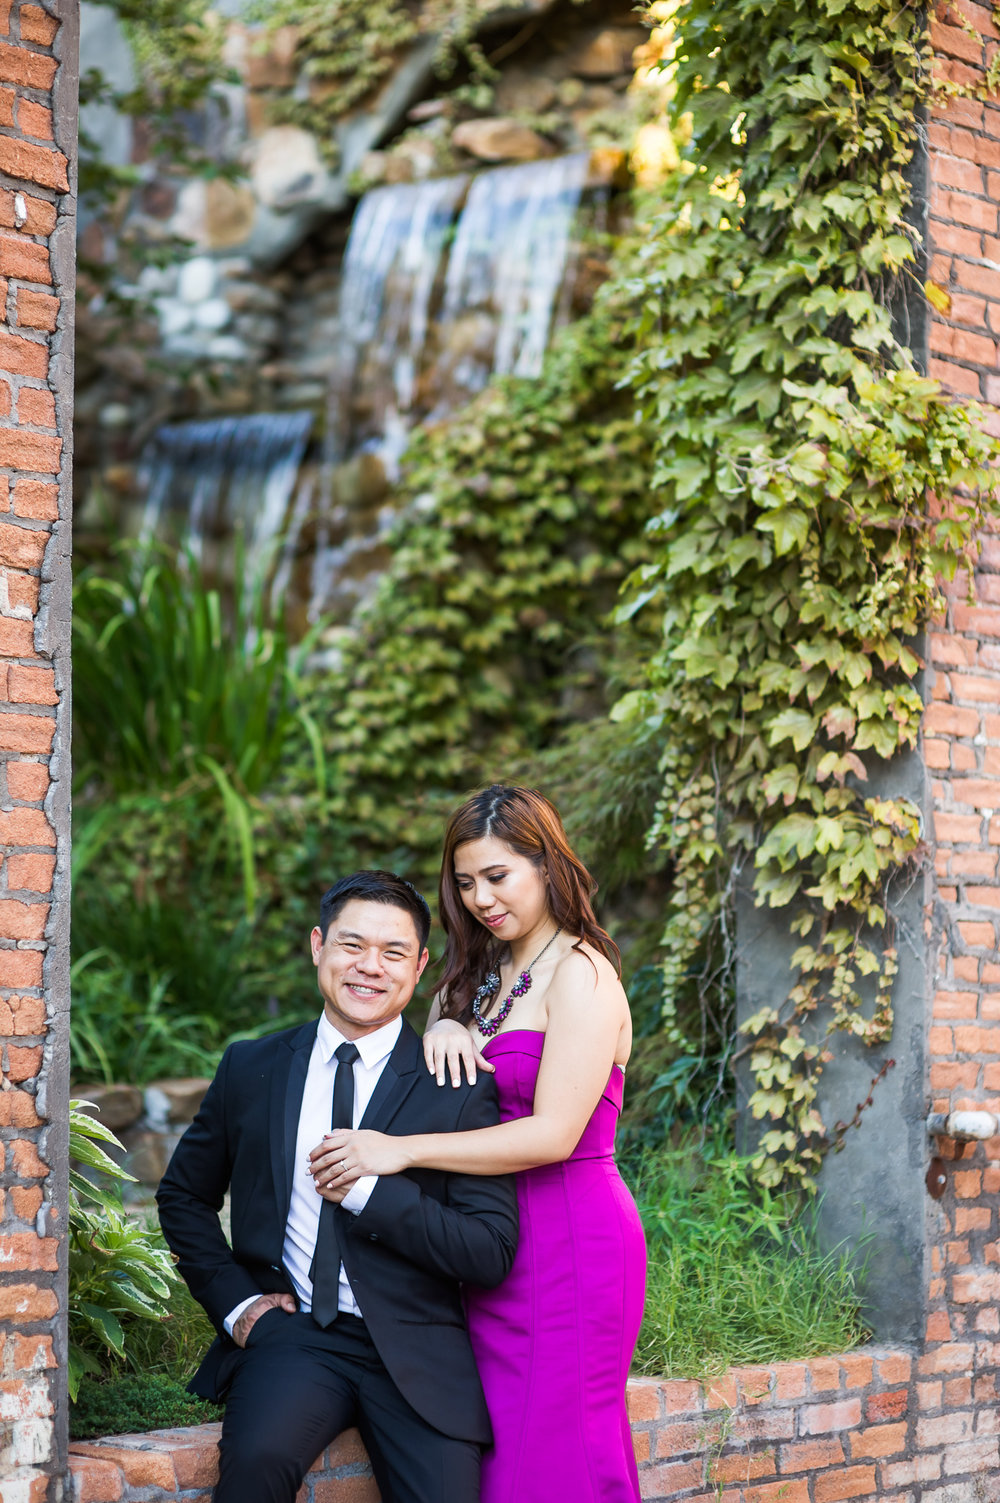 49-David Loi Studios - Cotton Mill - Mckinney Texas - Engagement Session-14176.jpg